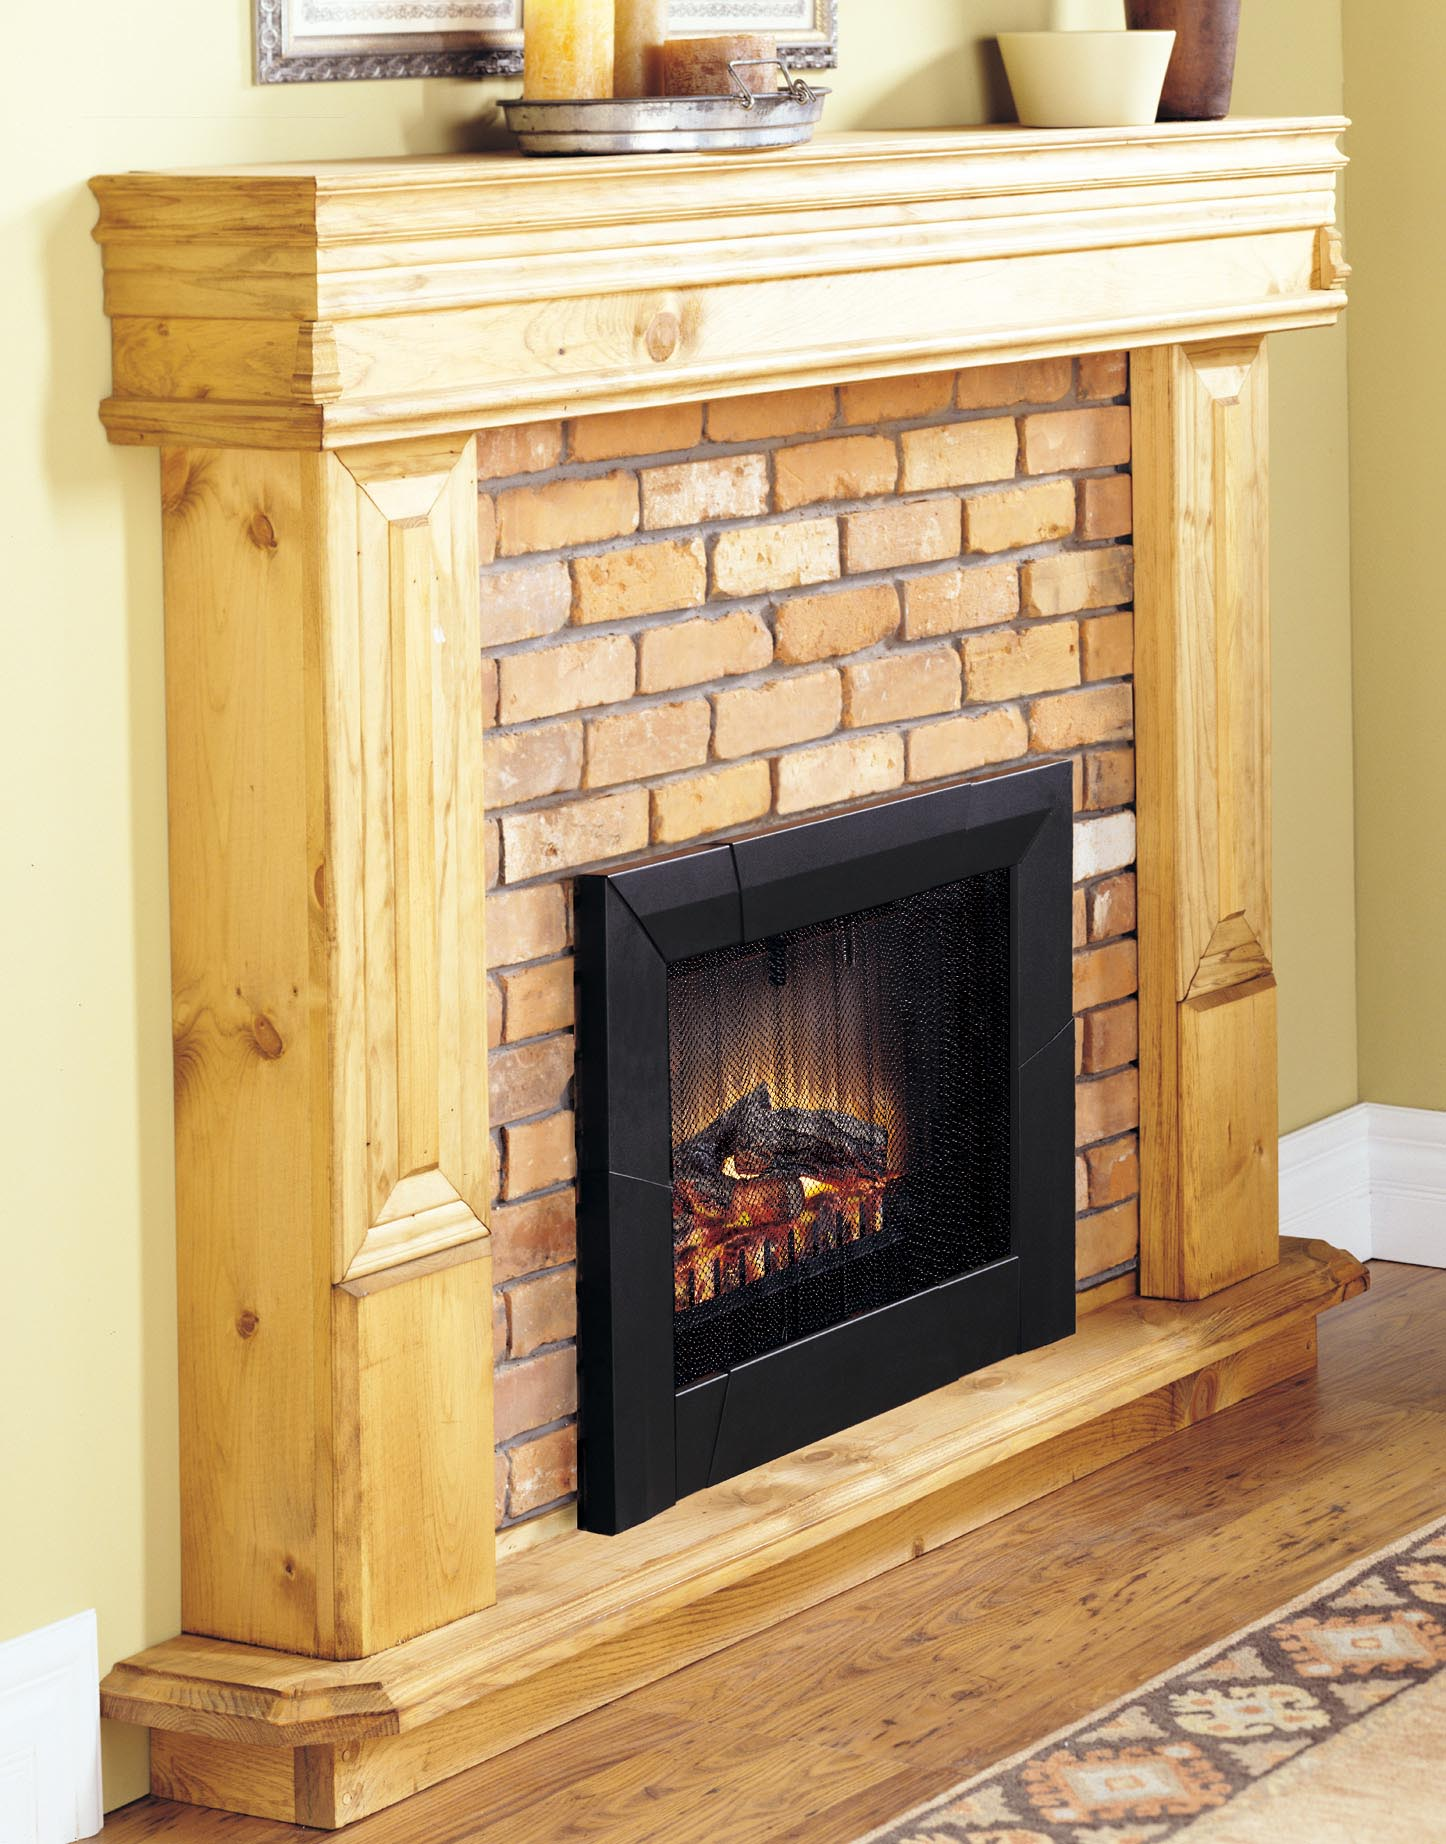 Fake Fireplace Insert Logs And More Accessories For Heaters Fireplace Designs